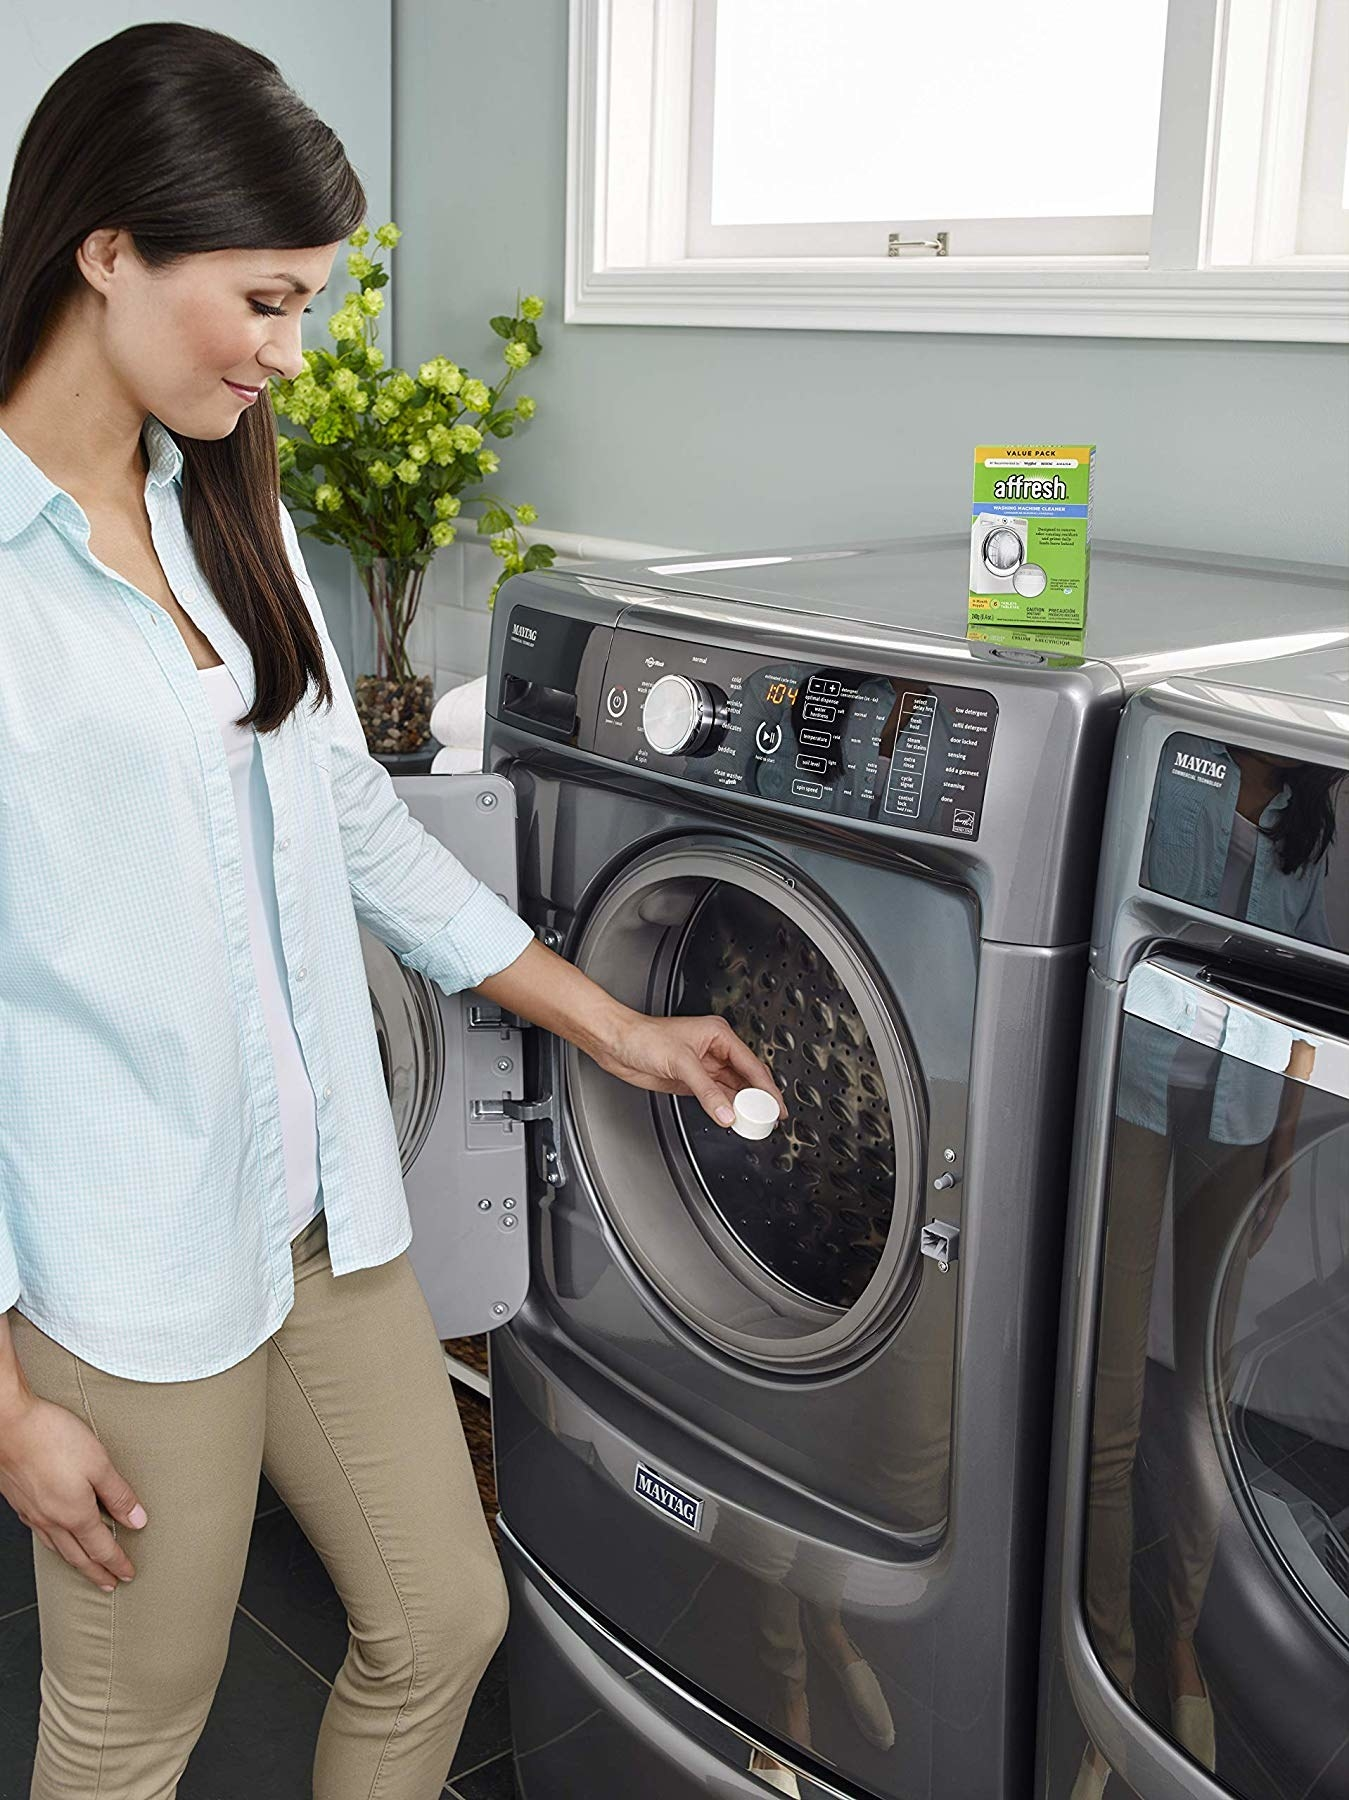 Model using the laundry machine cleaning tablet